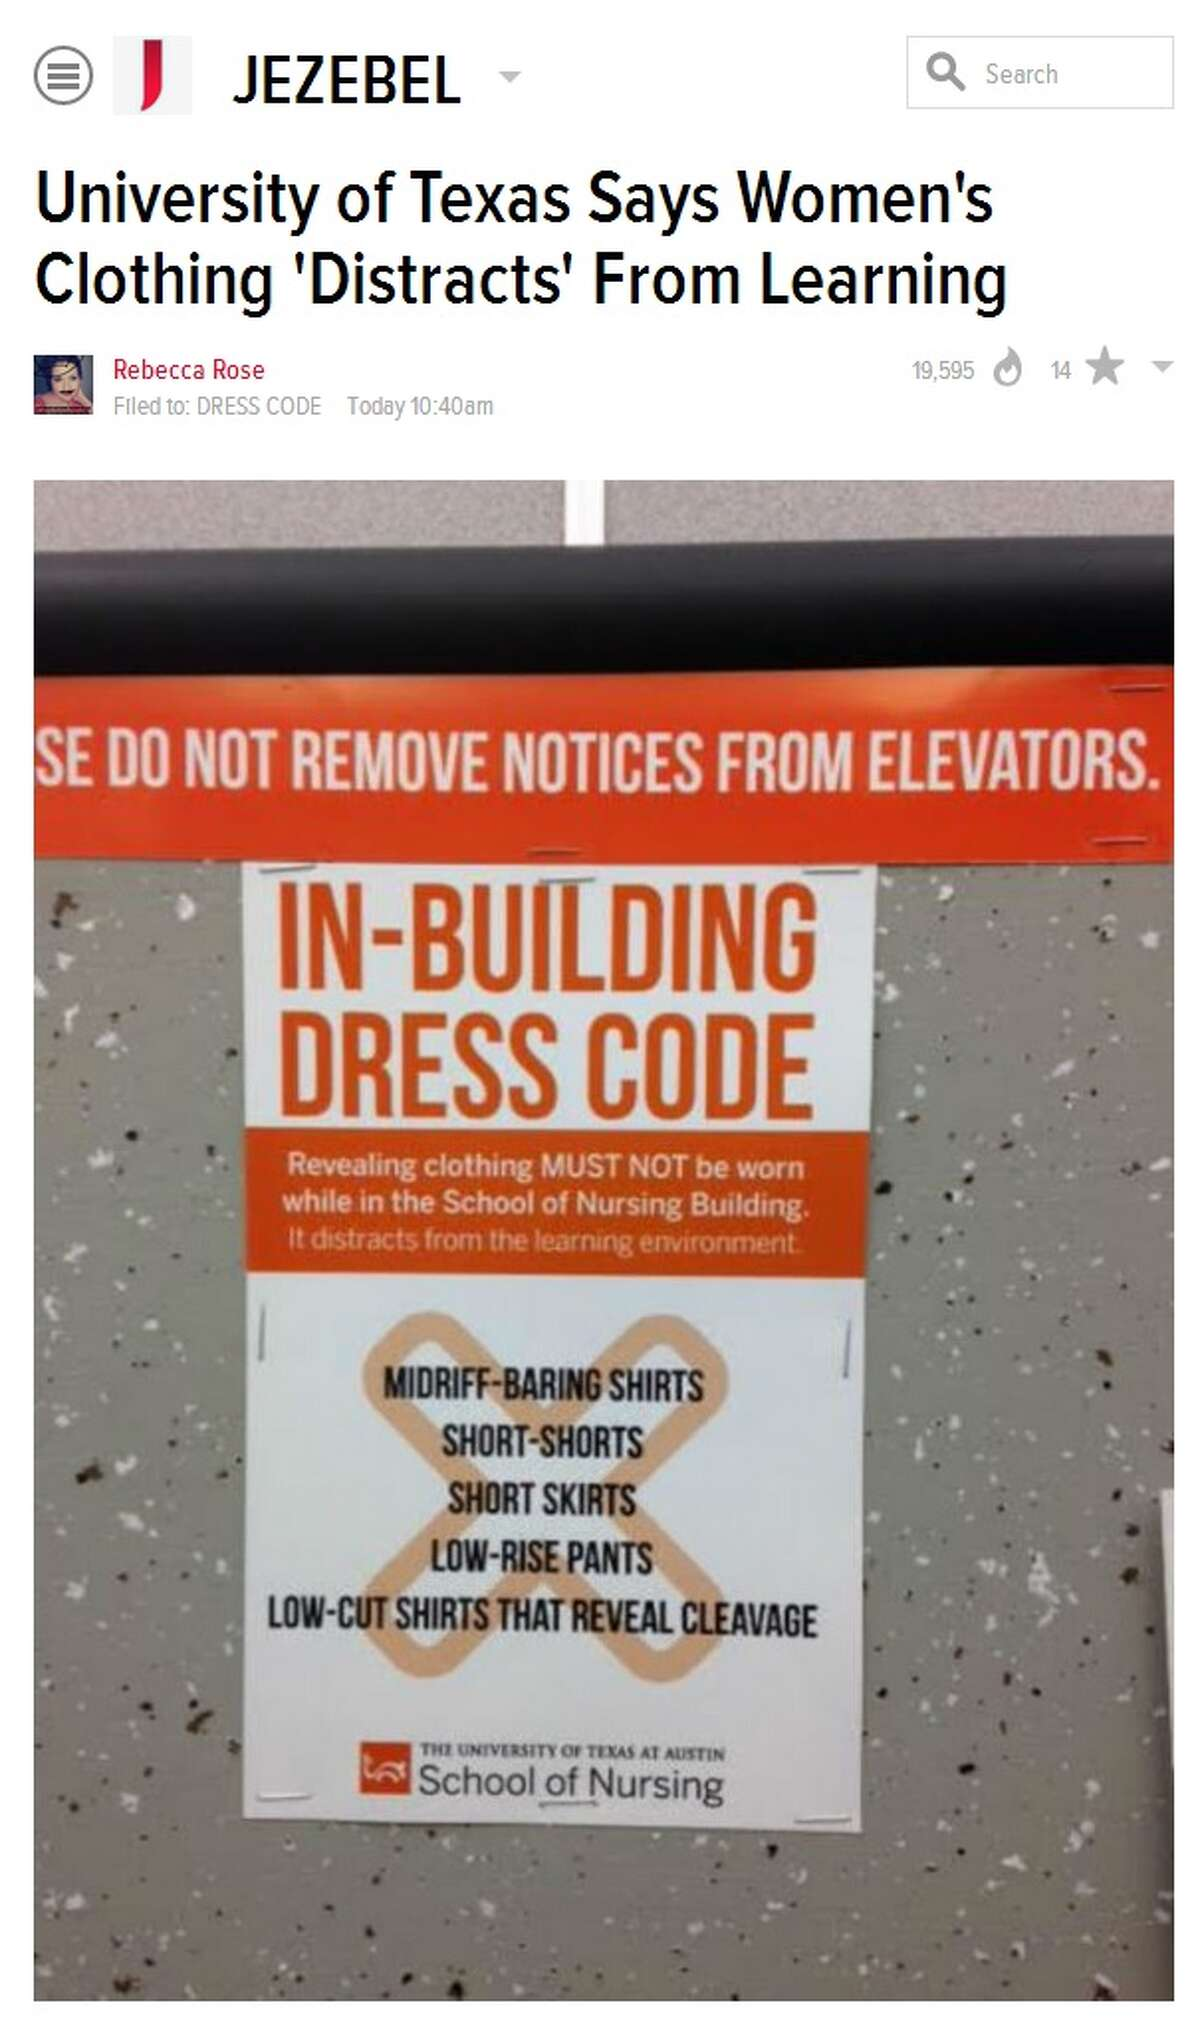 Dress code sign removed by University of Texas officials.